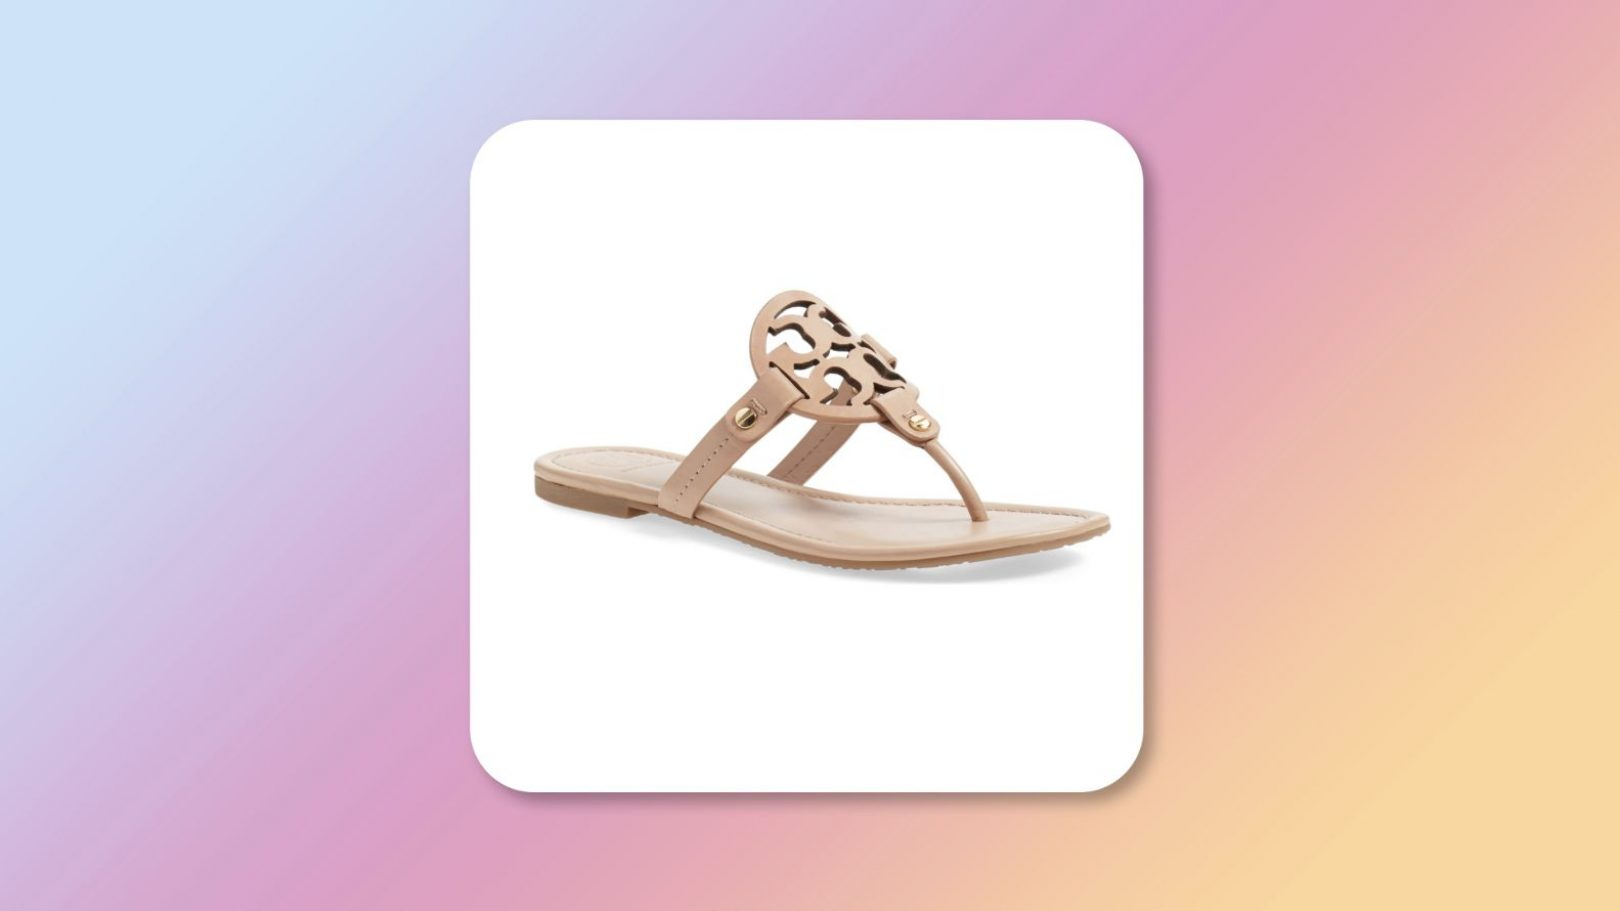 Nordstrom Tory Burch Miller sandals